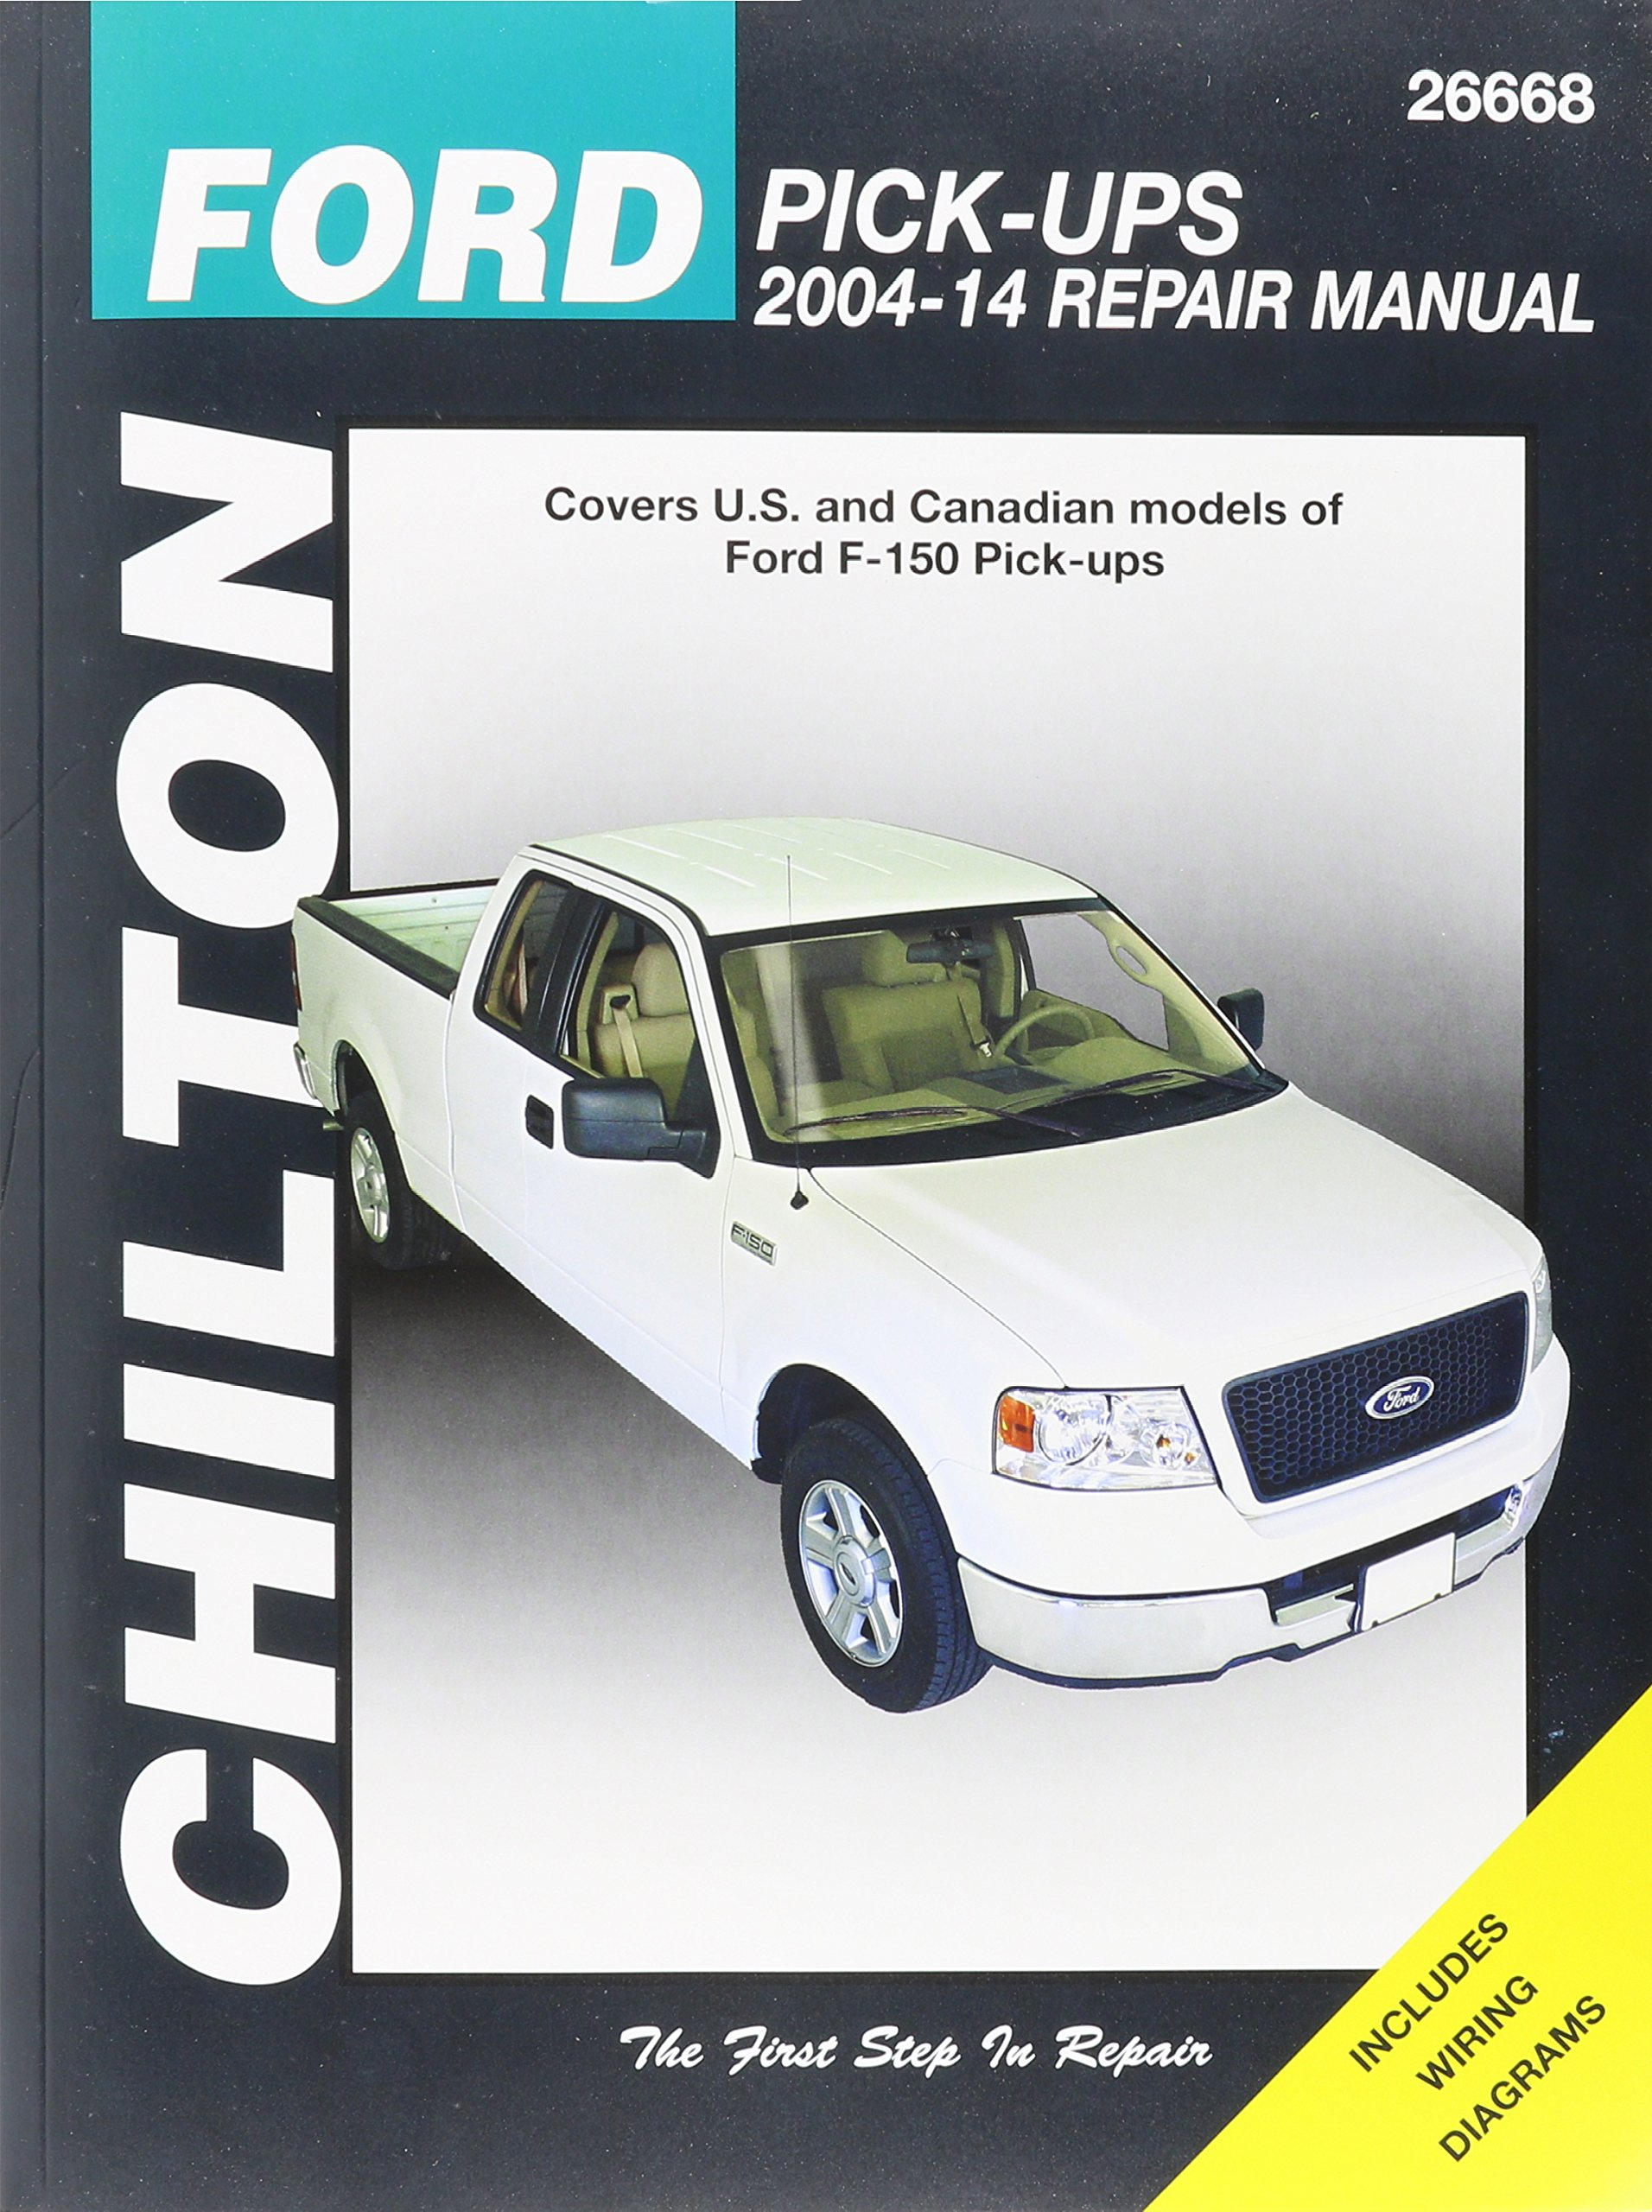 2001 ford f150 shop manual